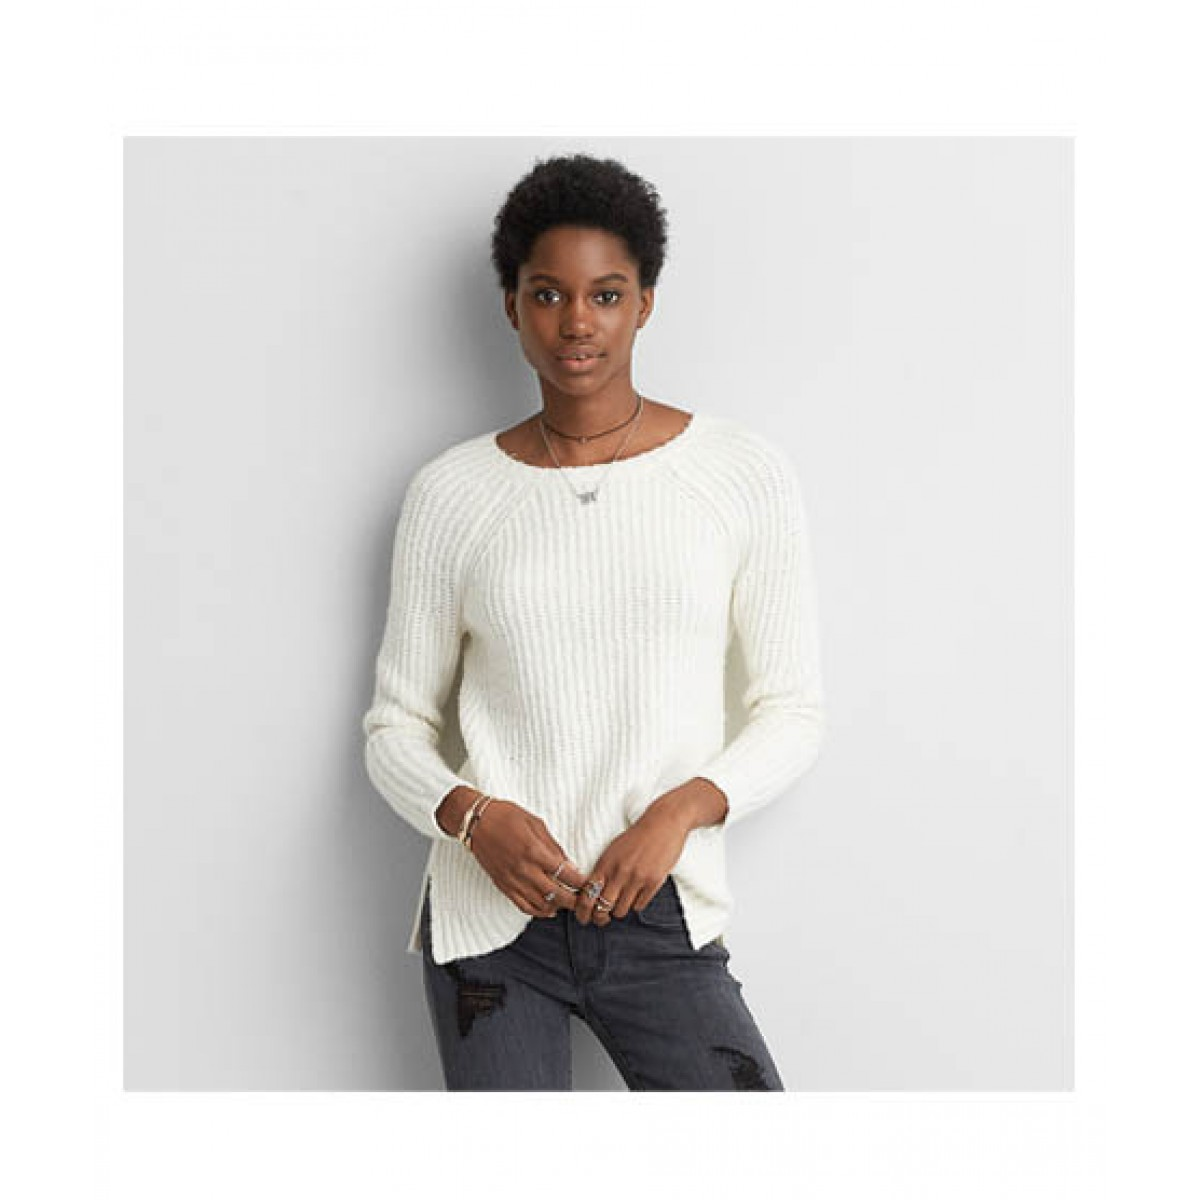 154c851ce2c8a American Eagle AEO Women's Sweater Price in Pakistan | Buy American Eagle  Ahh-Mazingly Soft Jegging Sweater Cream | iShopping.pk